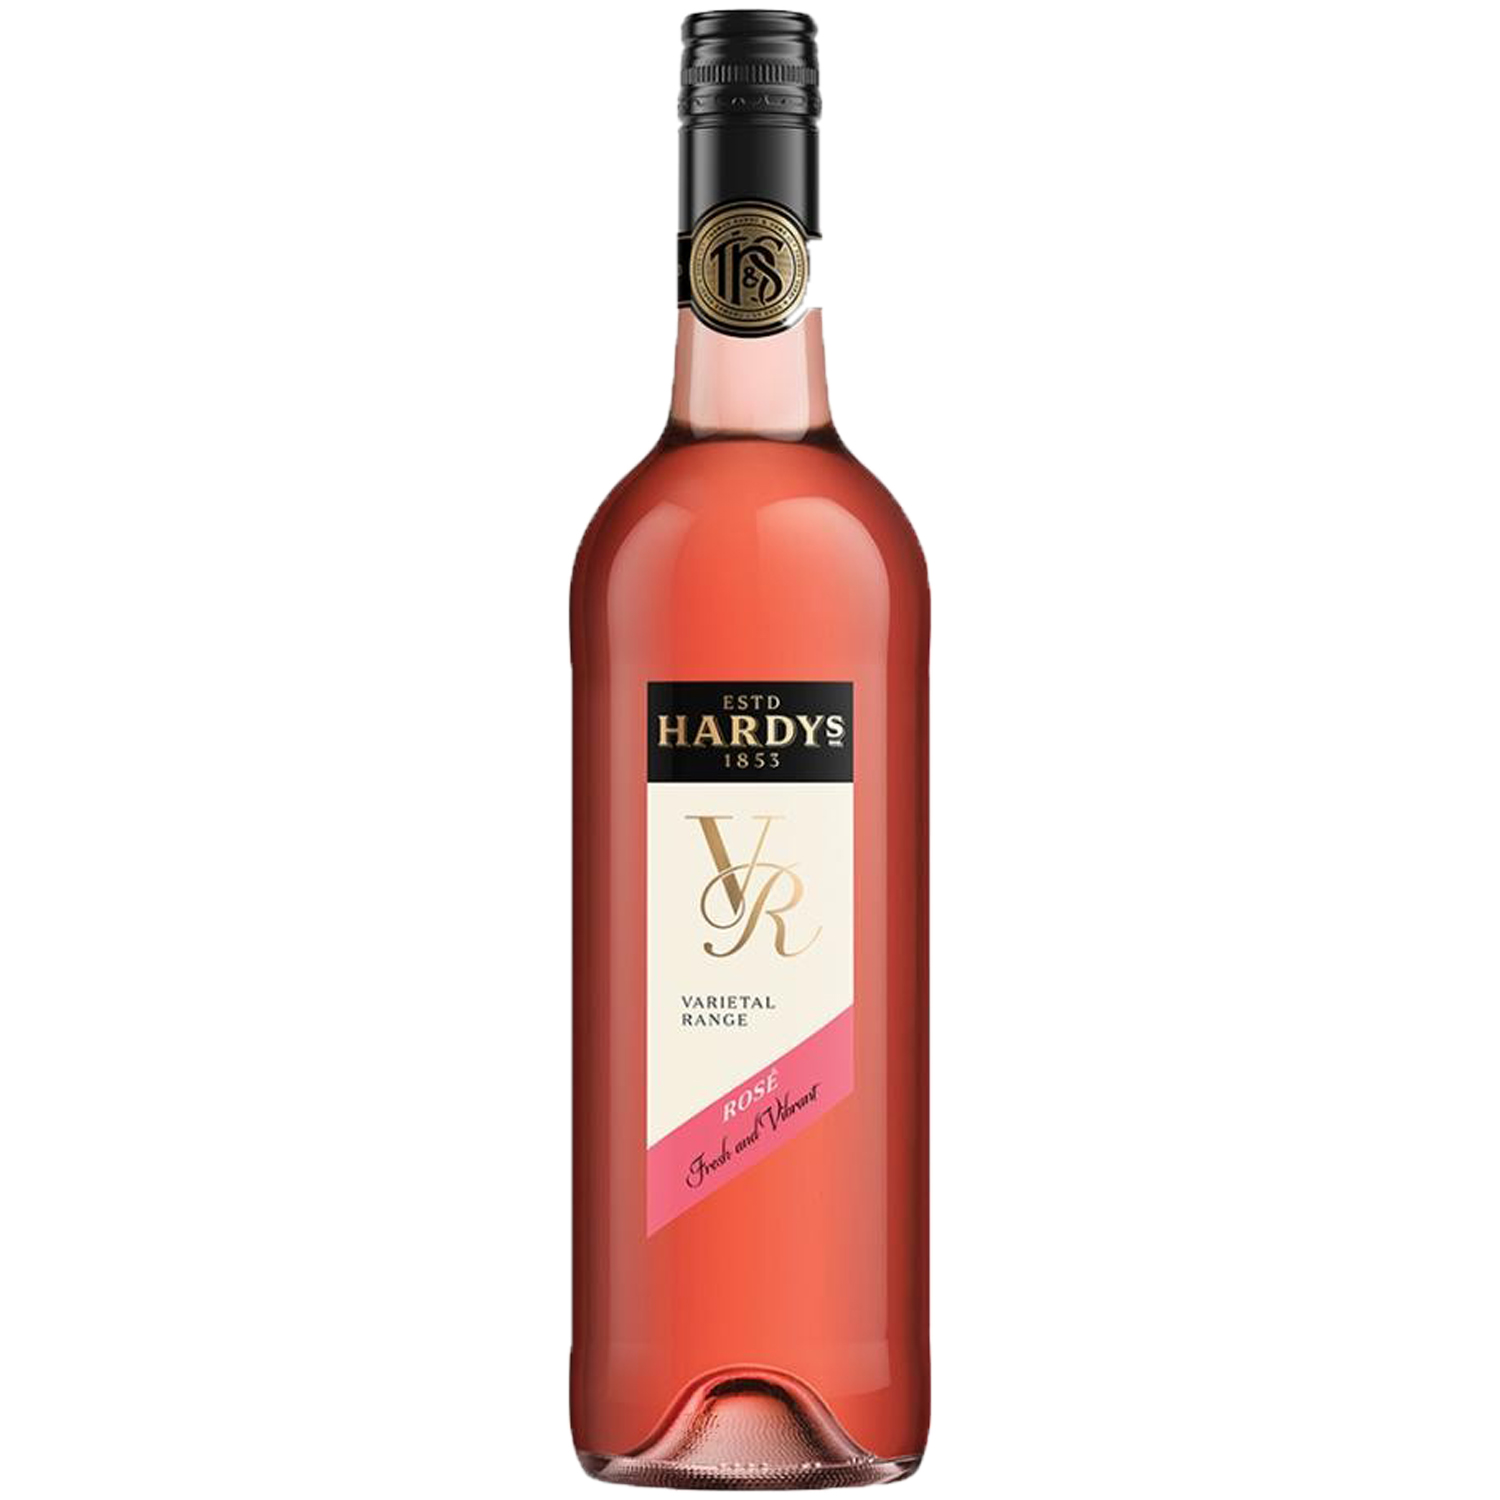 Hardys VR Series Wine - Rose 750ml